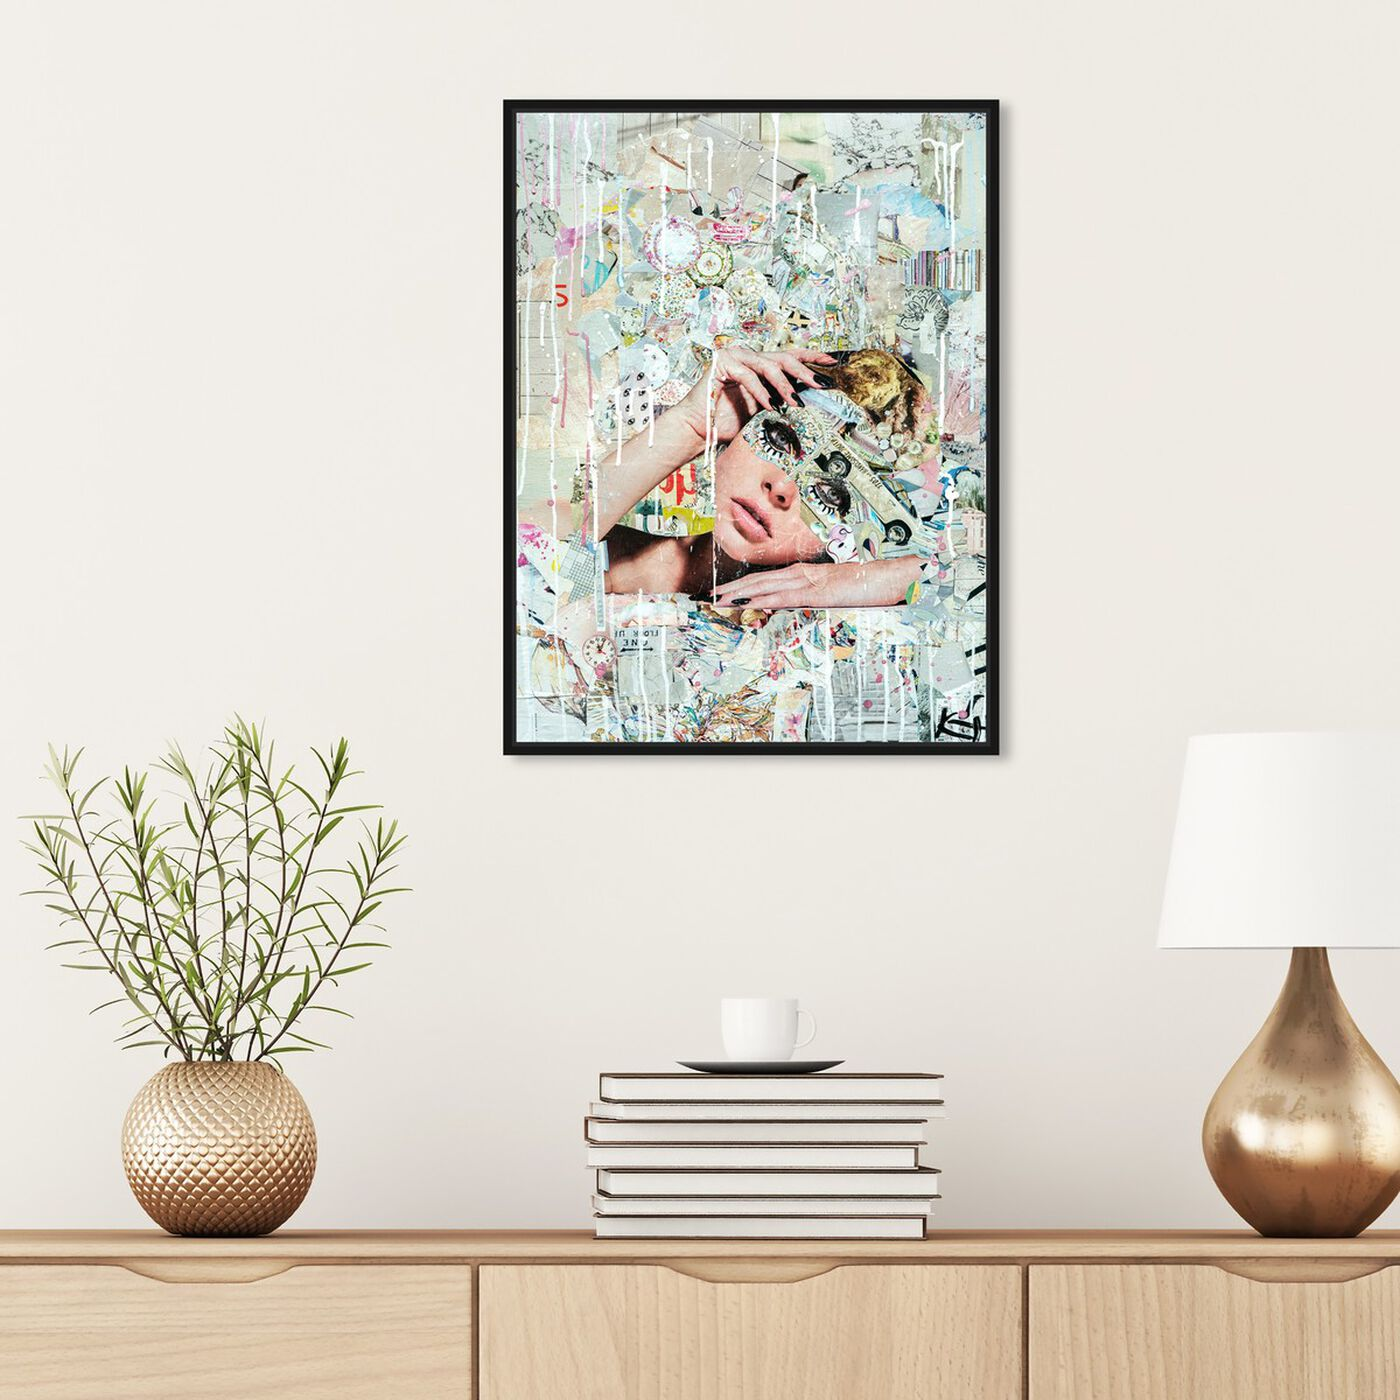 Hanging view of Katy Hirschfeld - Handsome Youths featuring fashion and glam and portraits art.